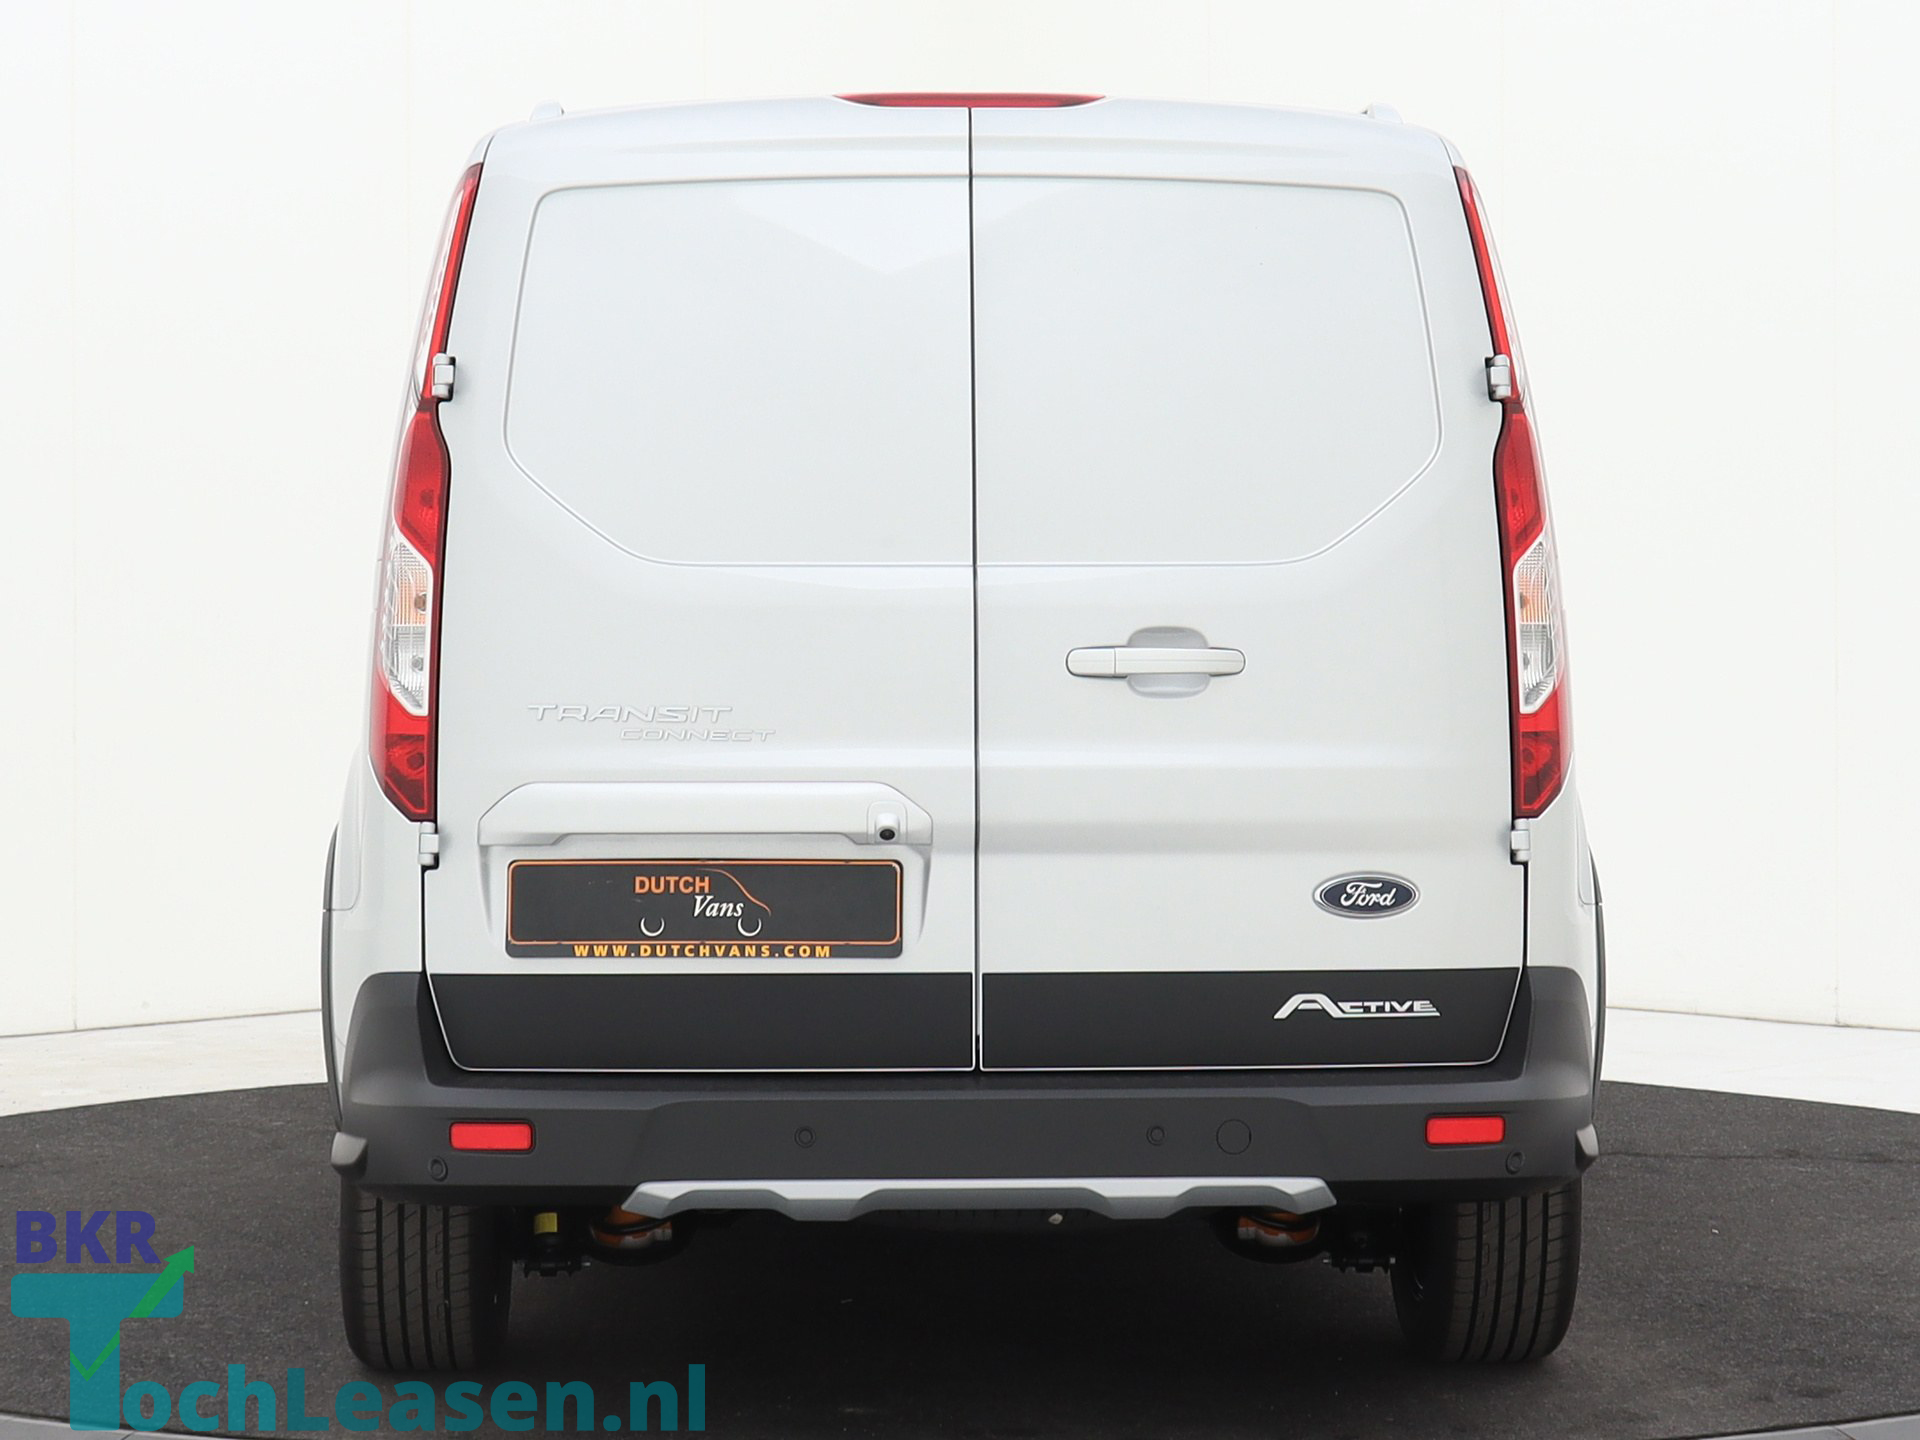 BKRTochleasen - Ford Transit Connect - Zilver 3